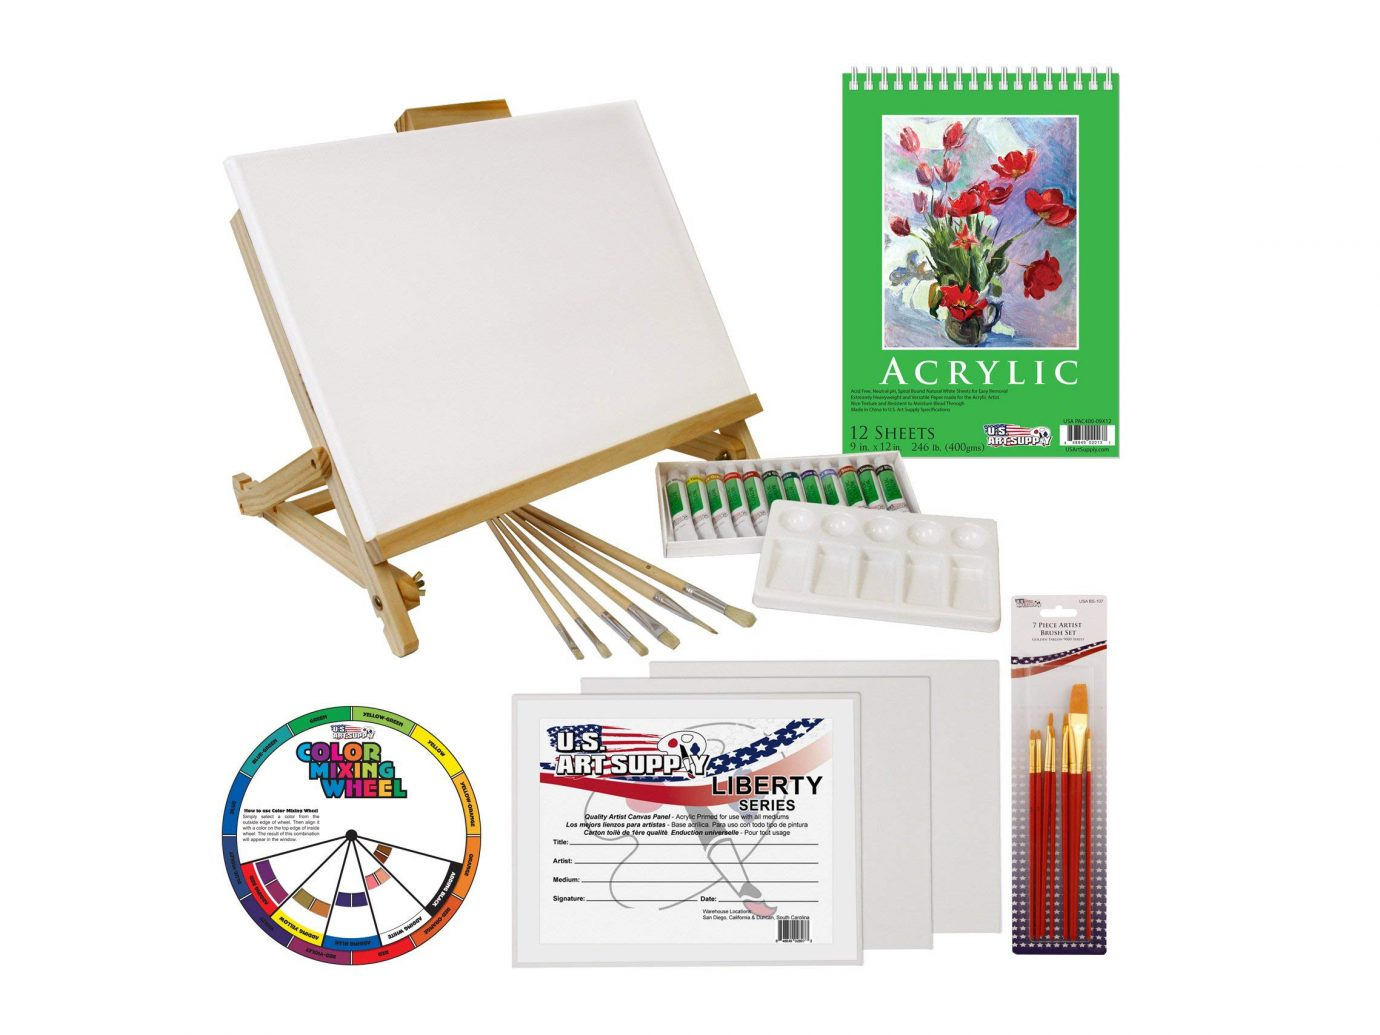 33 Piece Custom Artist Acrylic Painting Set